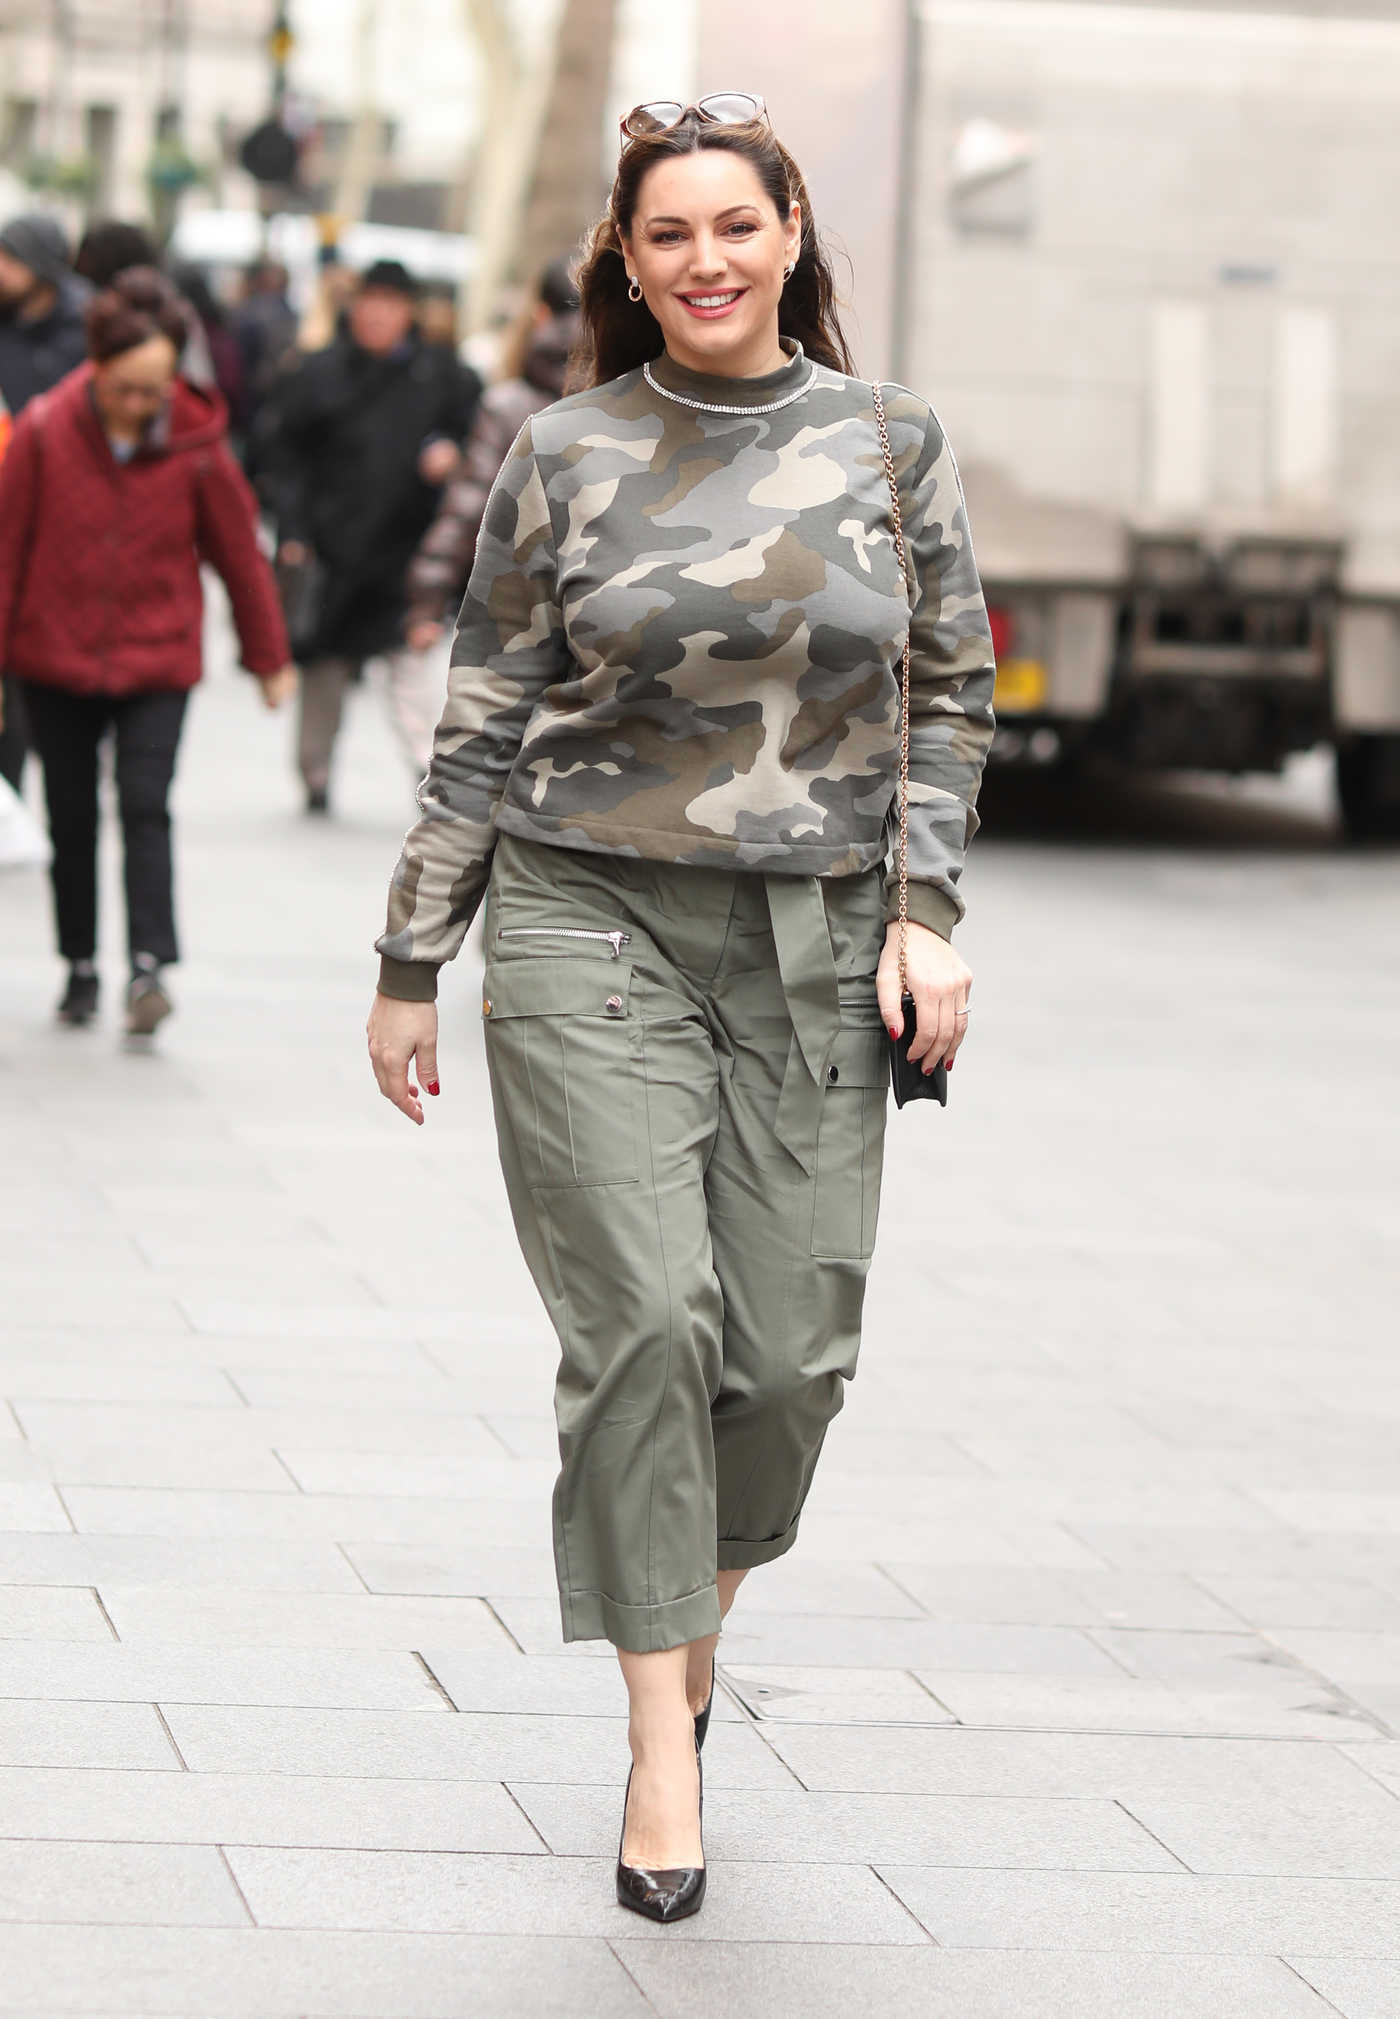 Kelly Brook in a Camo Sweatshirt Arrives at Global Radio Studios in London 03/13/2019